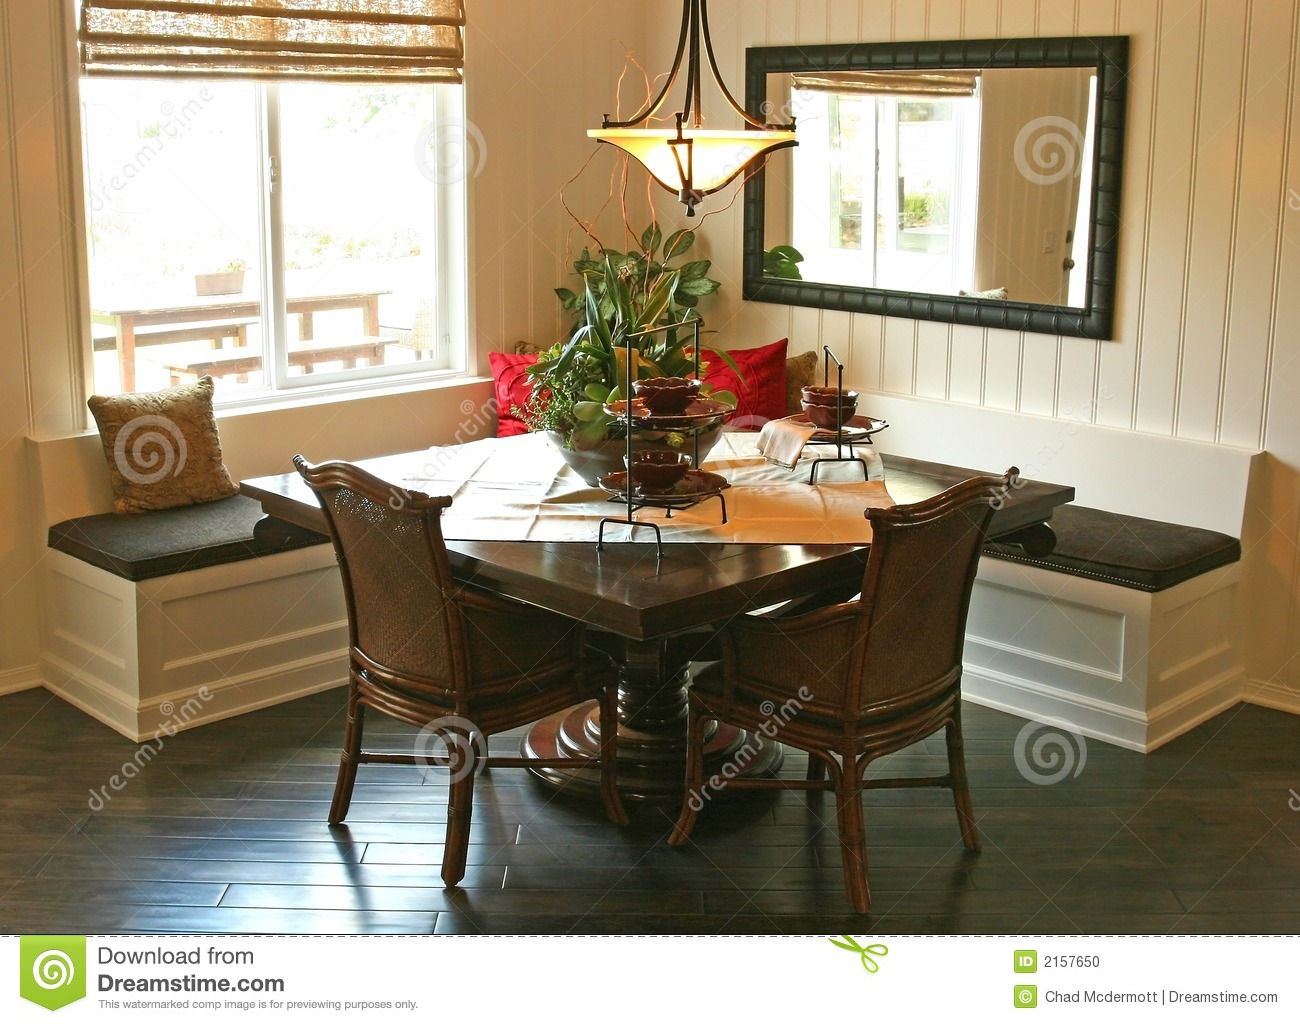 Model home interiors stock photo image 2157650 - Simple and model home interiors ...